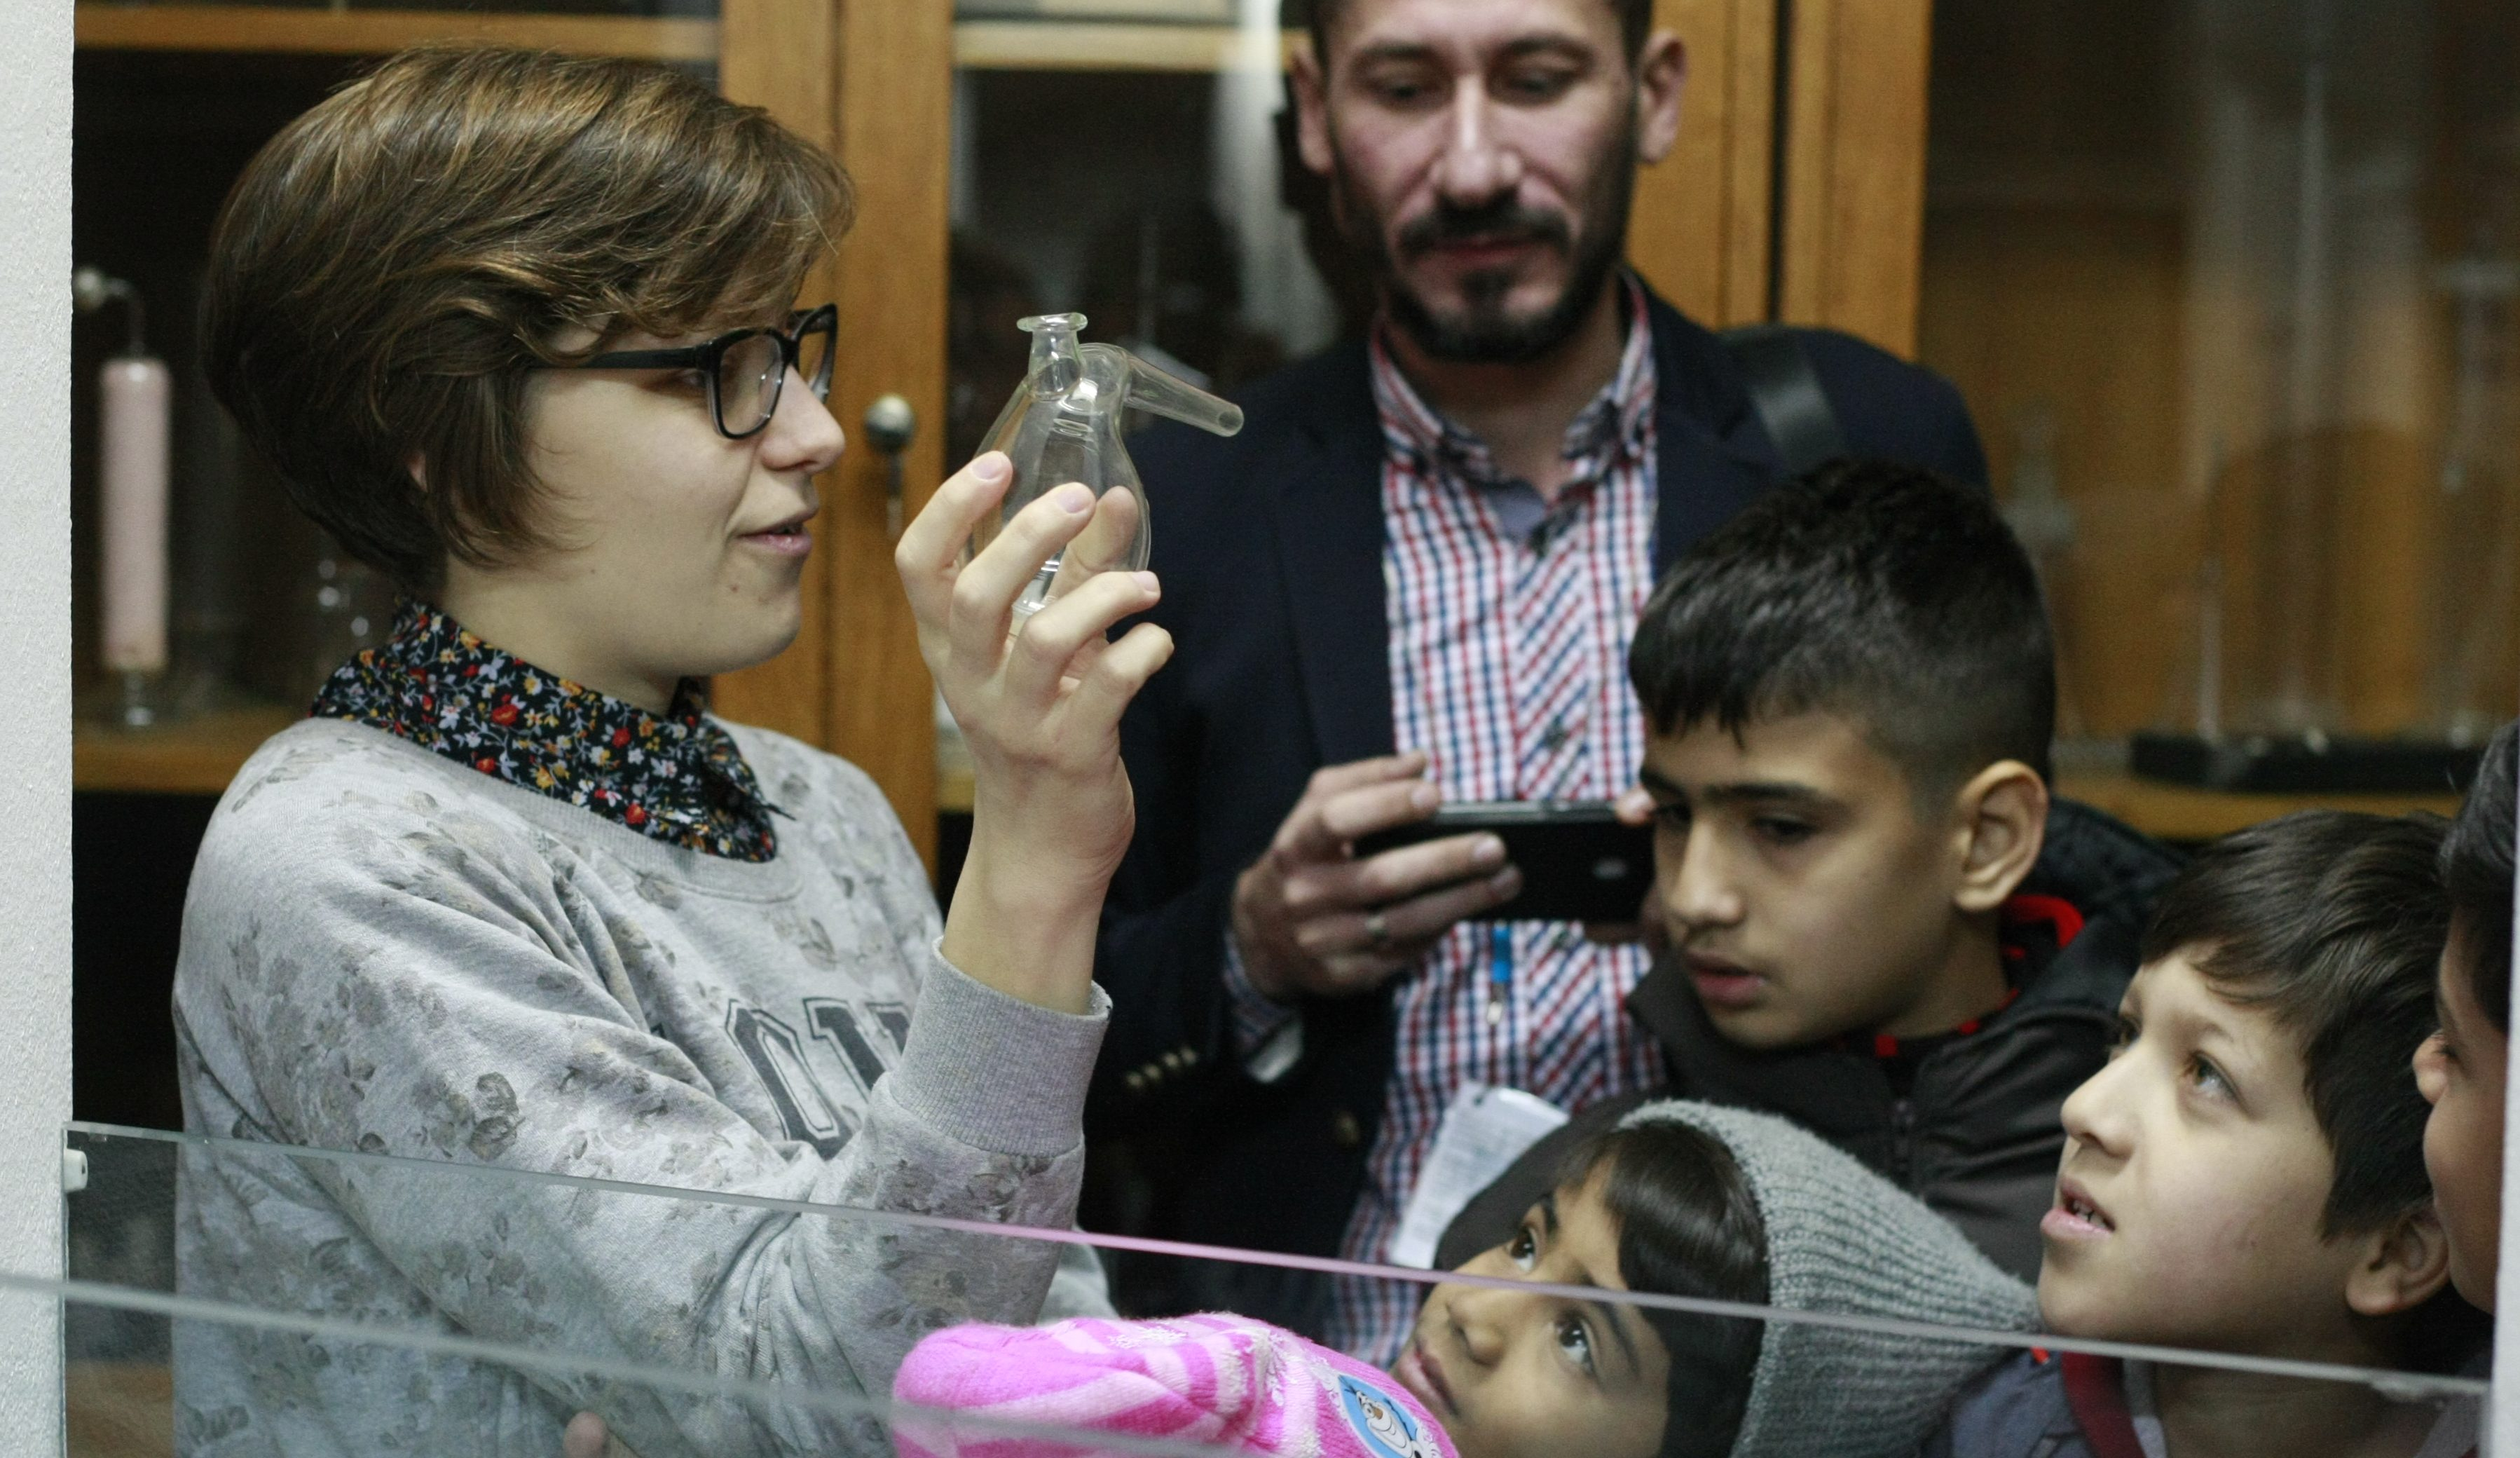 Children from the Asylum Centre in Krnjaca visited the Faculty of Chemistry in Belgrade